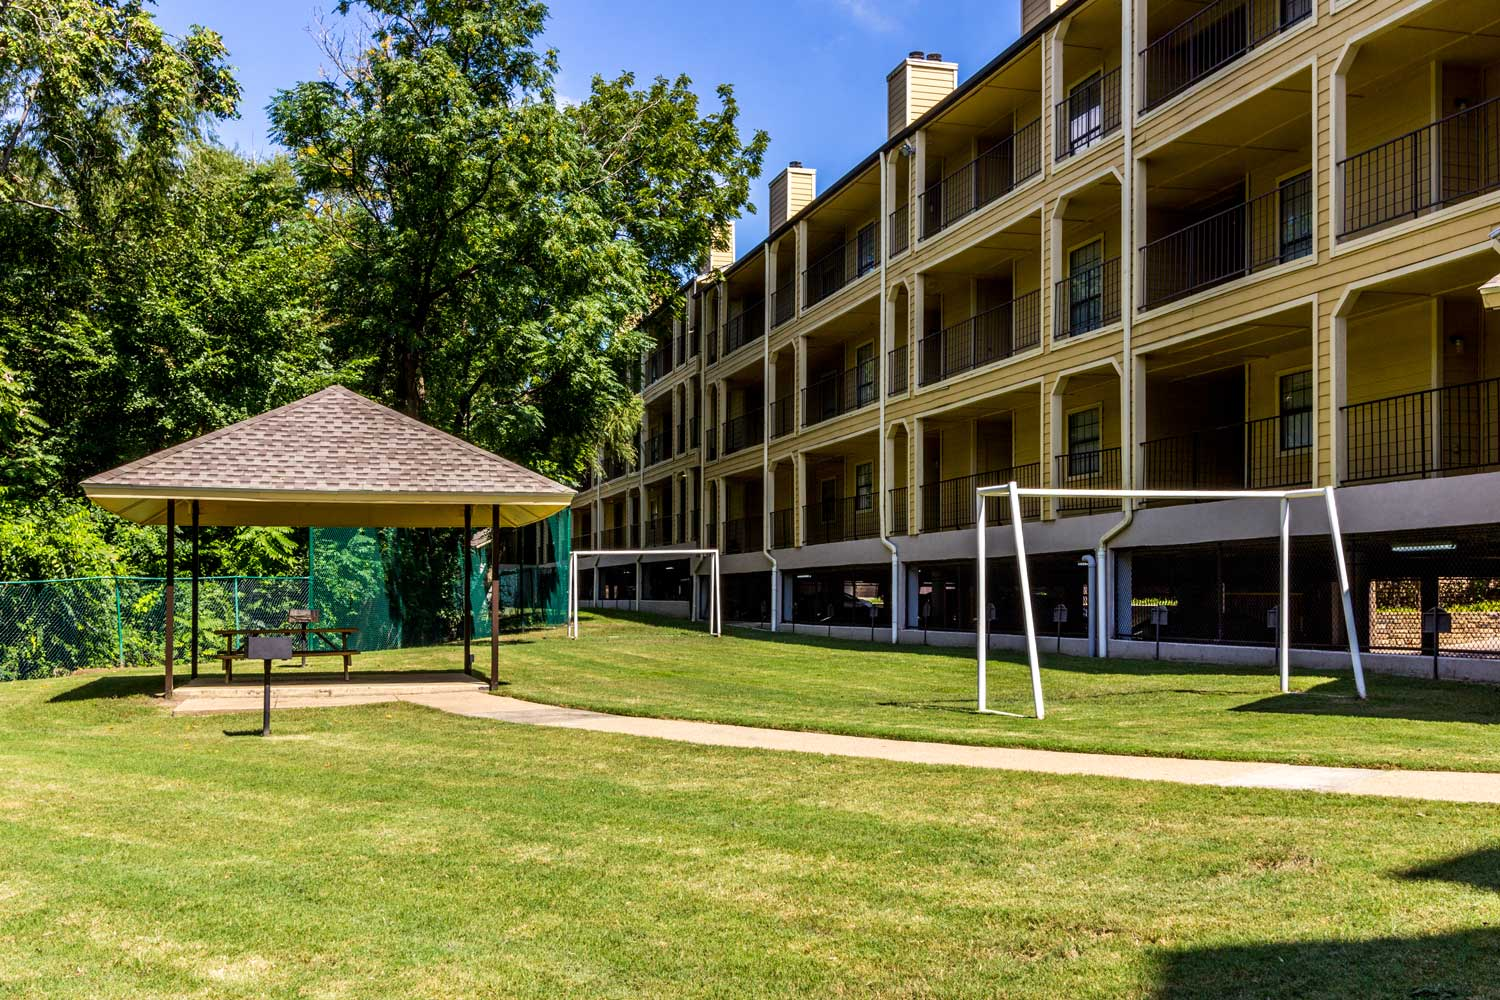 Picnic Area with Barbecue Grills at Forest Hills Apartments in Dallas, TX